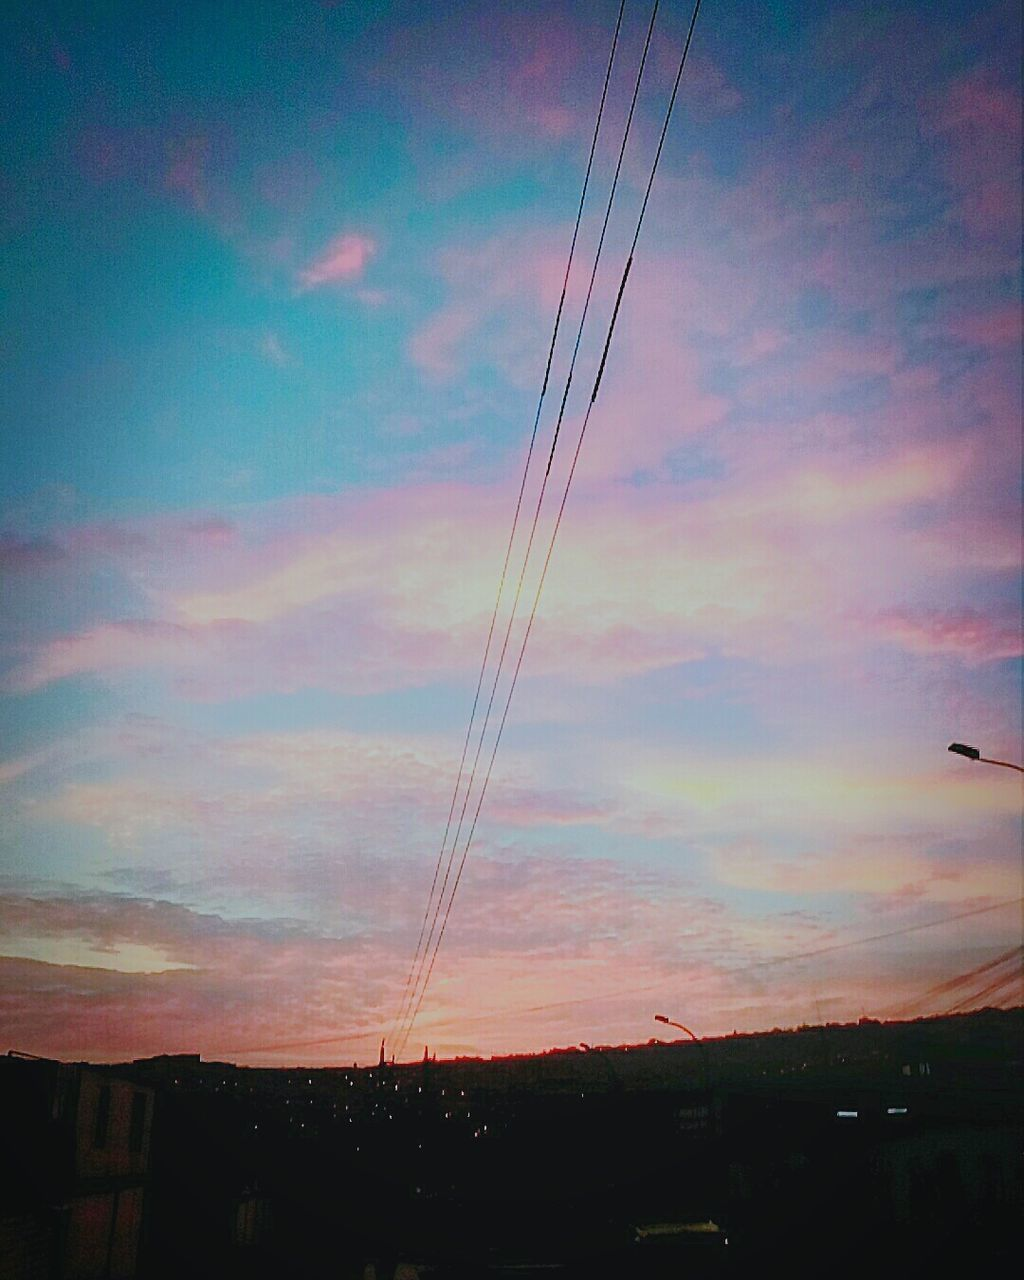 silhouette, sky, sunset, cable, low angle view, no people, connection, cloud - sky, built structure, outdoors, electricity pylon, building exterior, nature, architecture, technology, telephone line, day